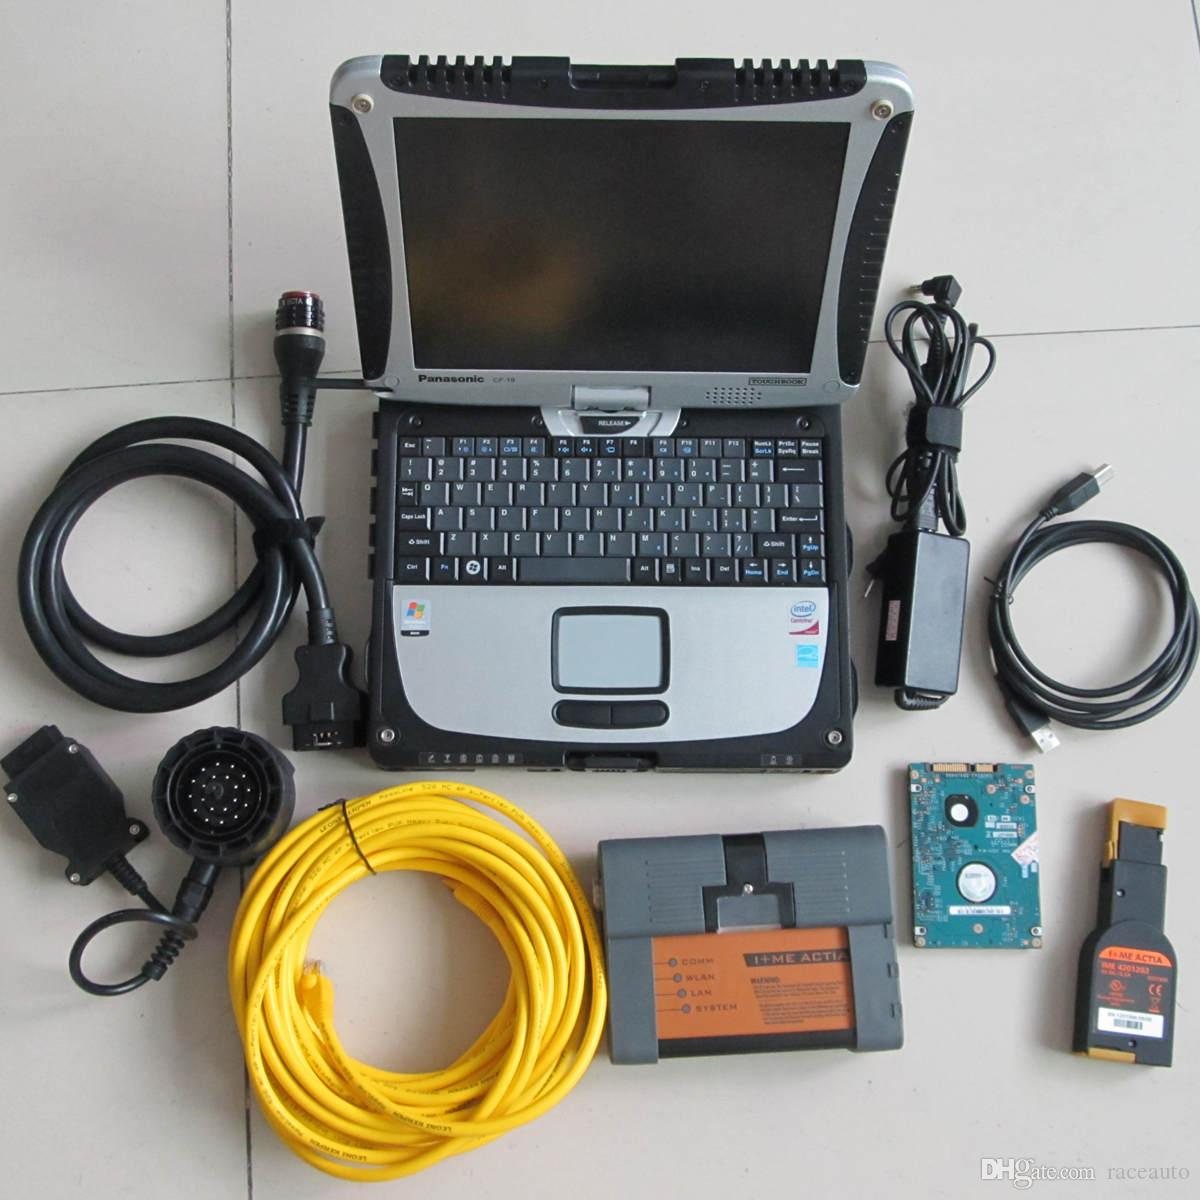 for BMW ICOM A2 B C Programming & Diagnostic Tool Latest Soft-ware in CF-19 i5 4g laptop ready to use